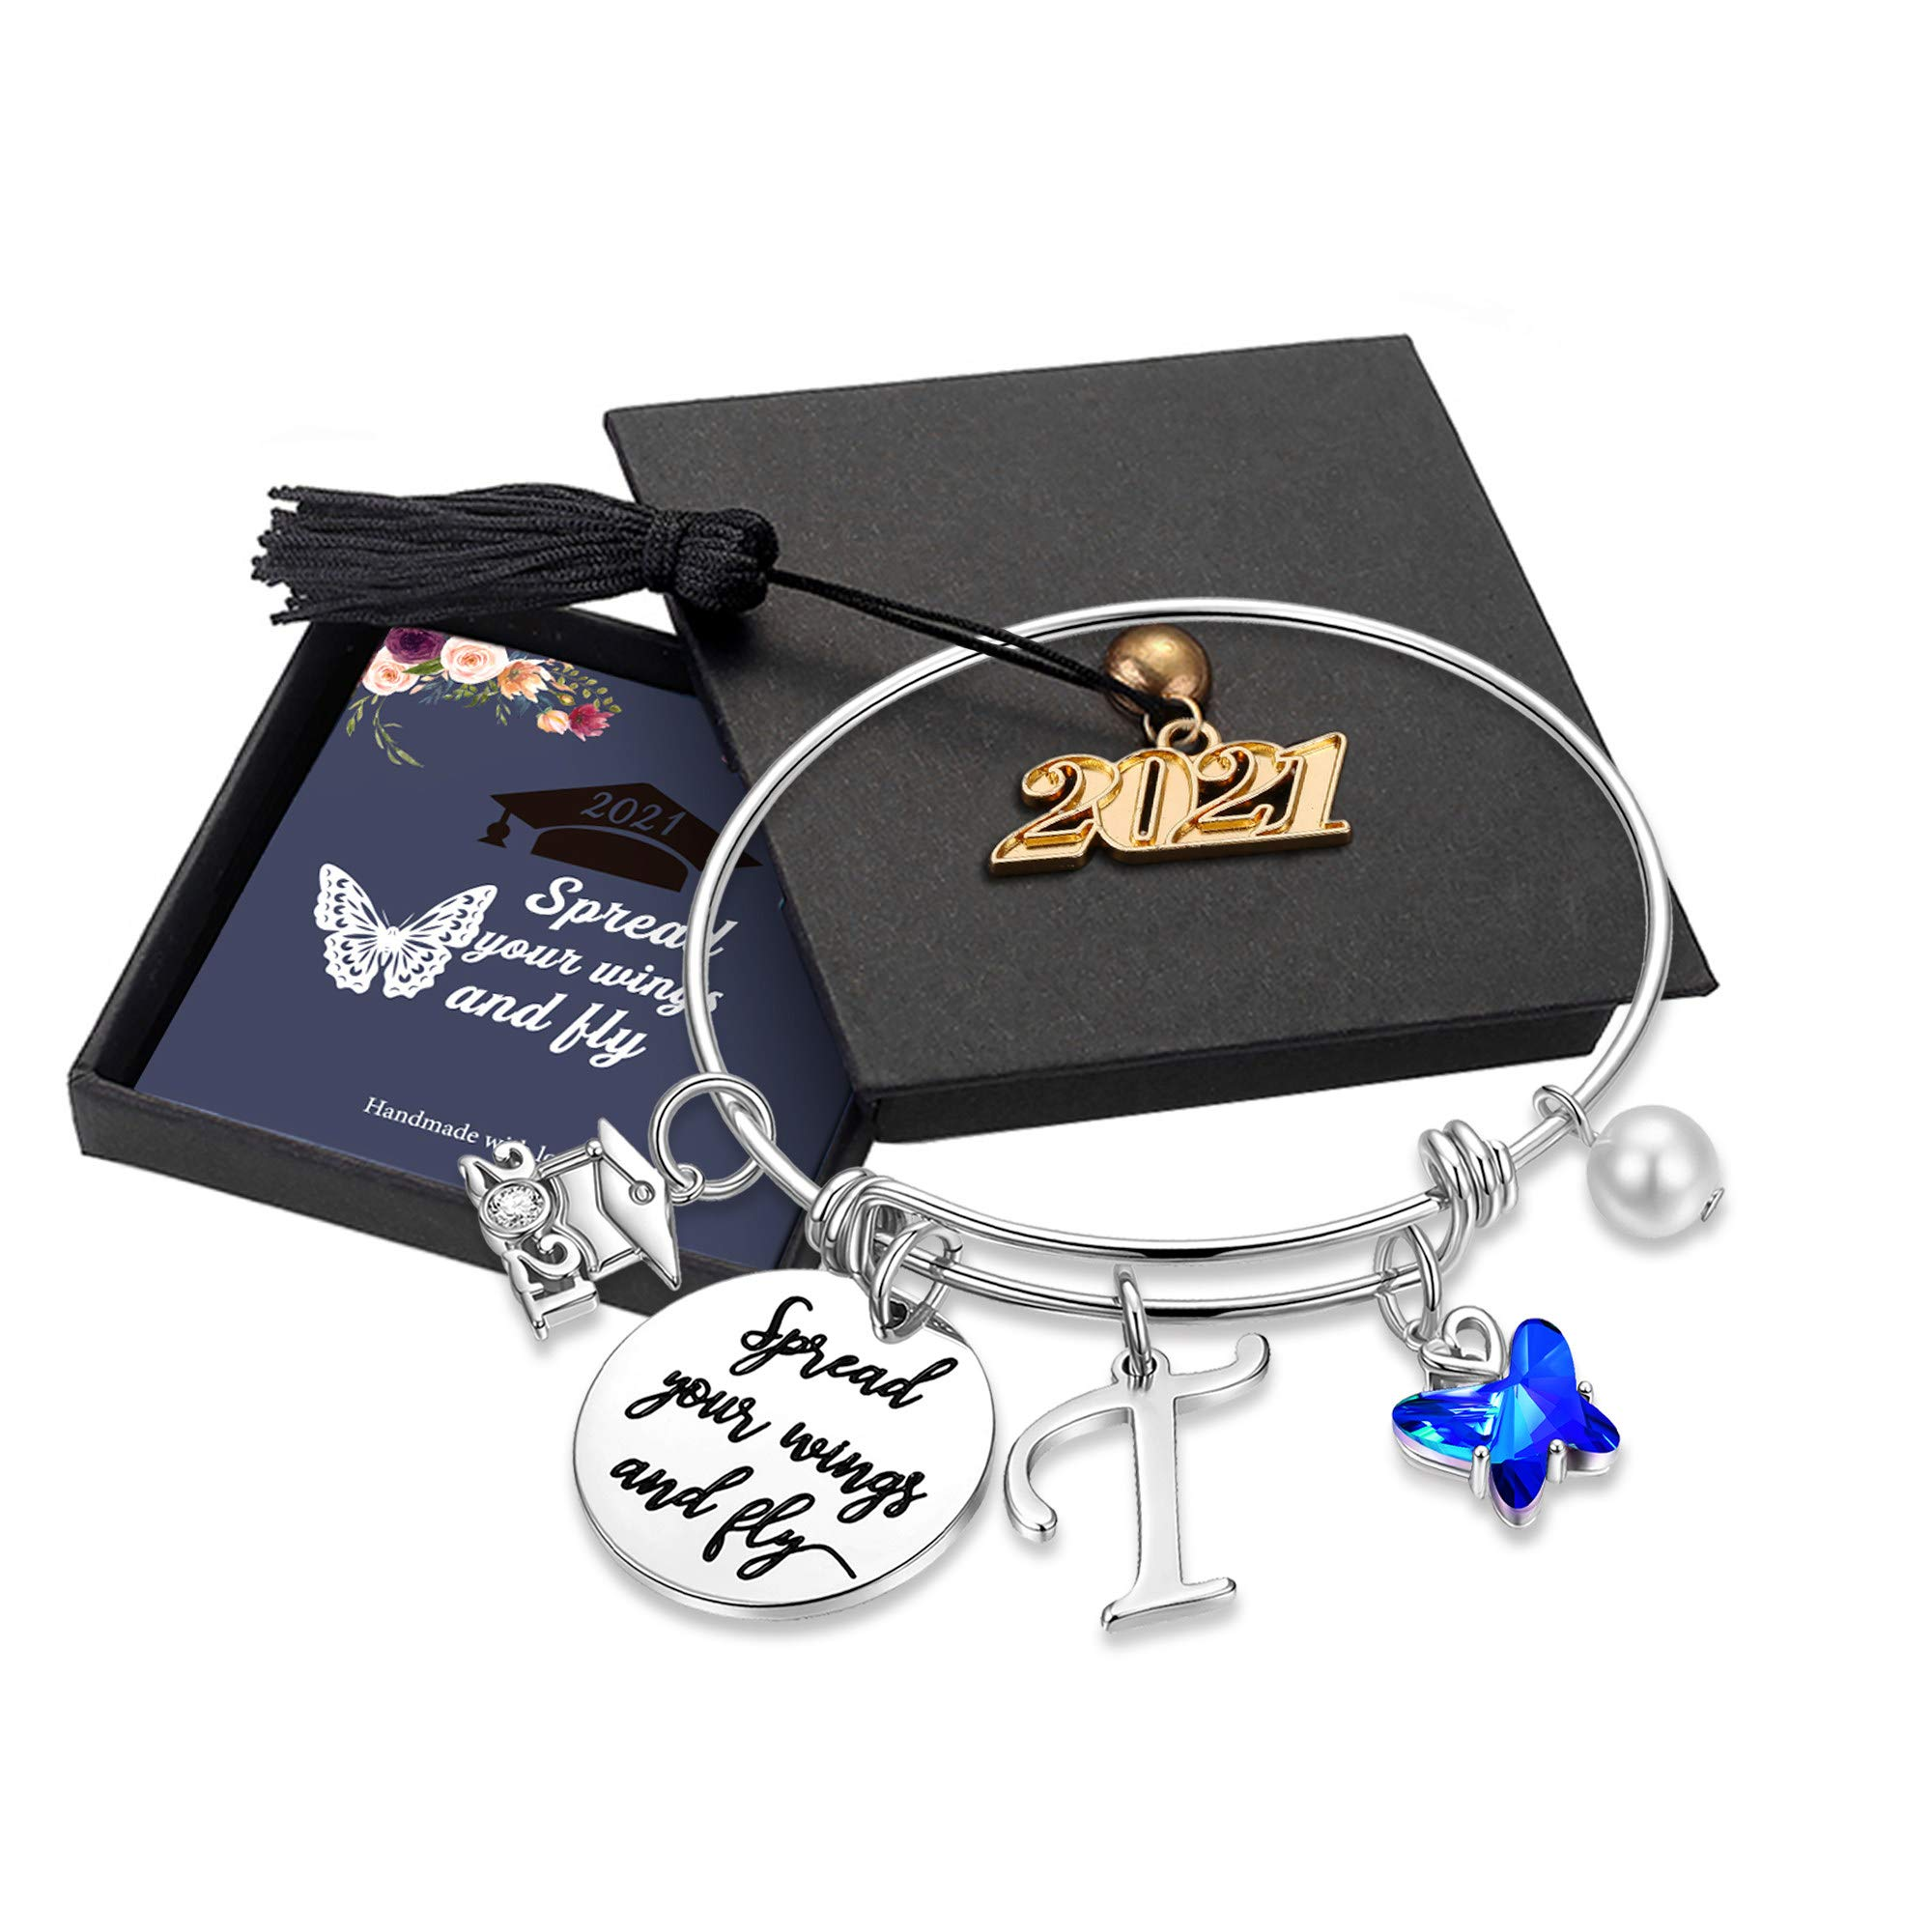 Inspirational Graduation Gifts Butterfly Bracelet, Engraved Inspirational Bangle with 2021 Graduation Grad Cap Mantra Quote Spread Your Wings And Fly Charm Bracelet Graduation Friendship Gifts for Her